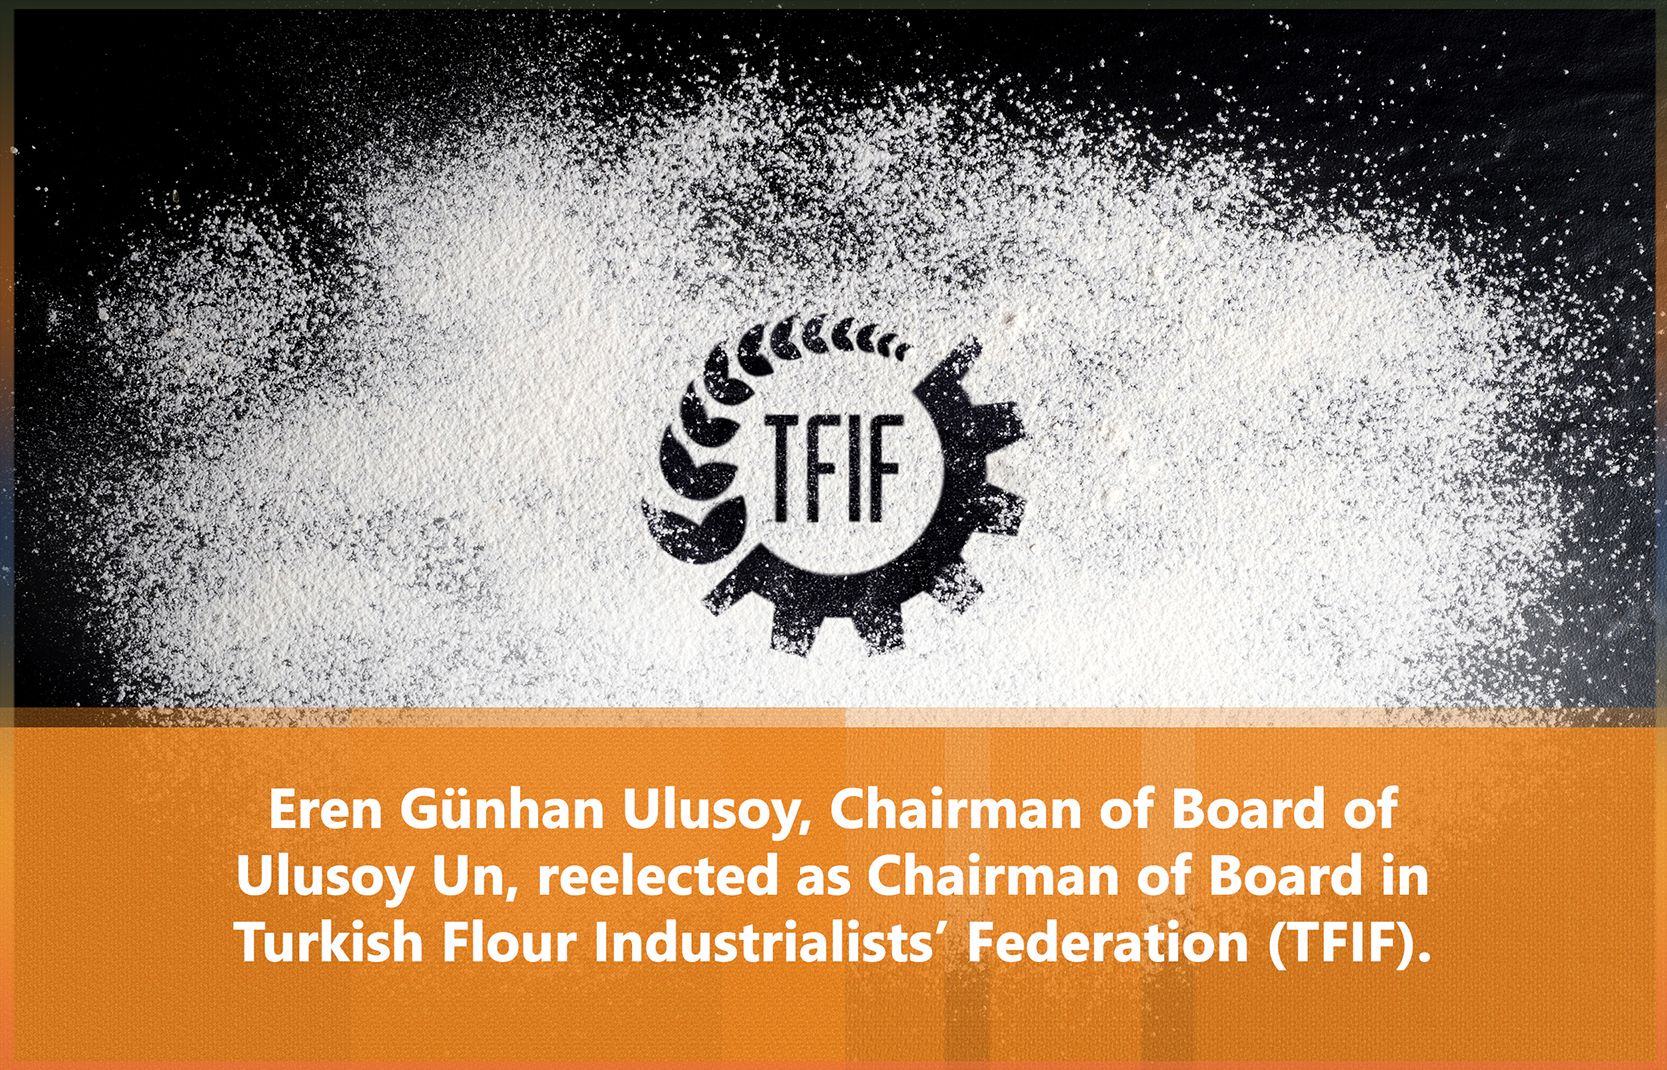 TFIF, chairman, election, Ulusoy